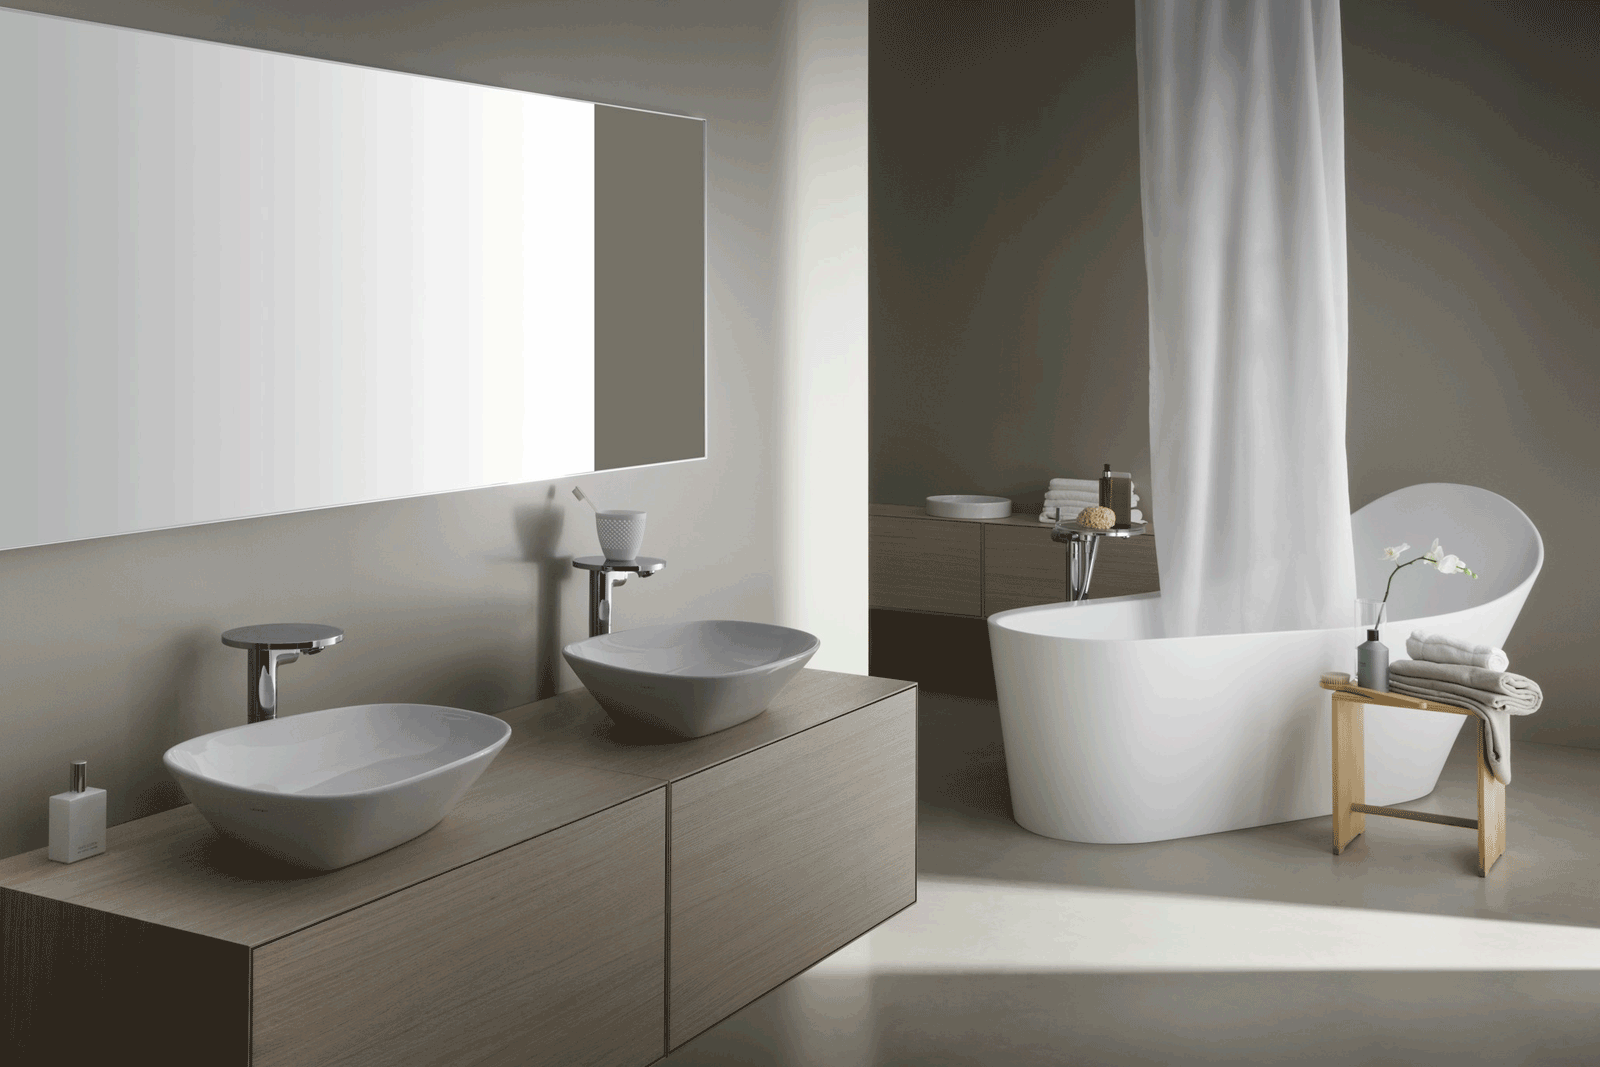 Laufen Bathrooms At Bathline Bathroom Design Northern